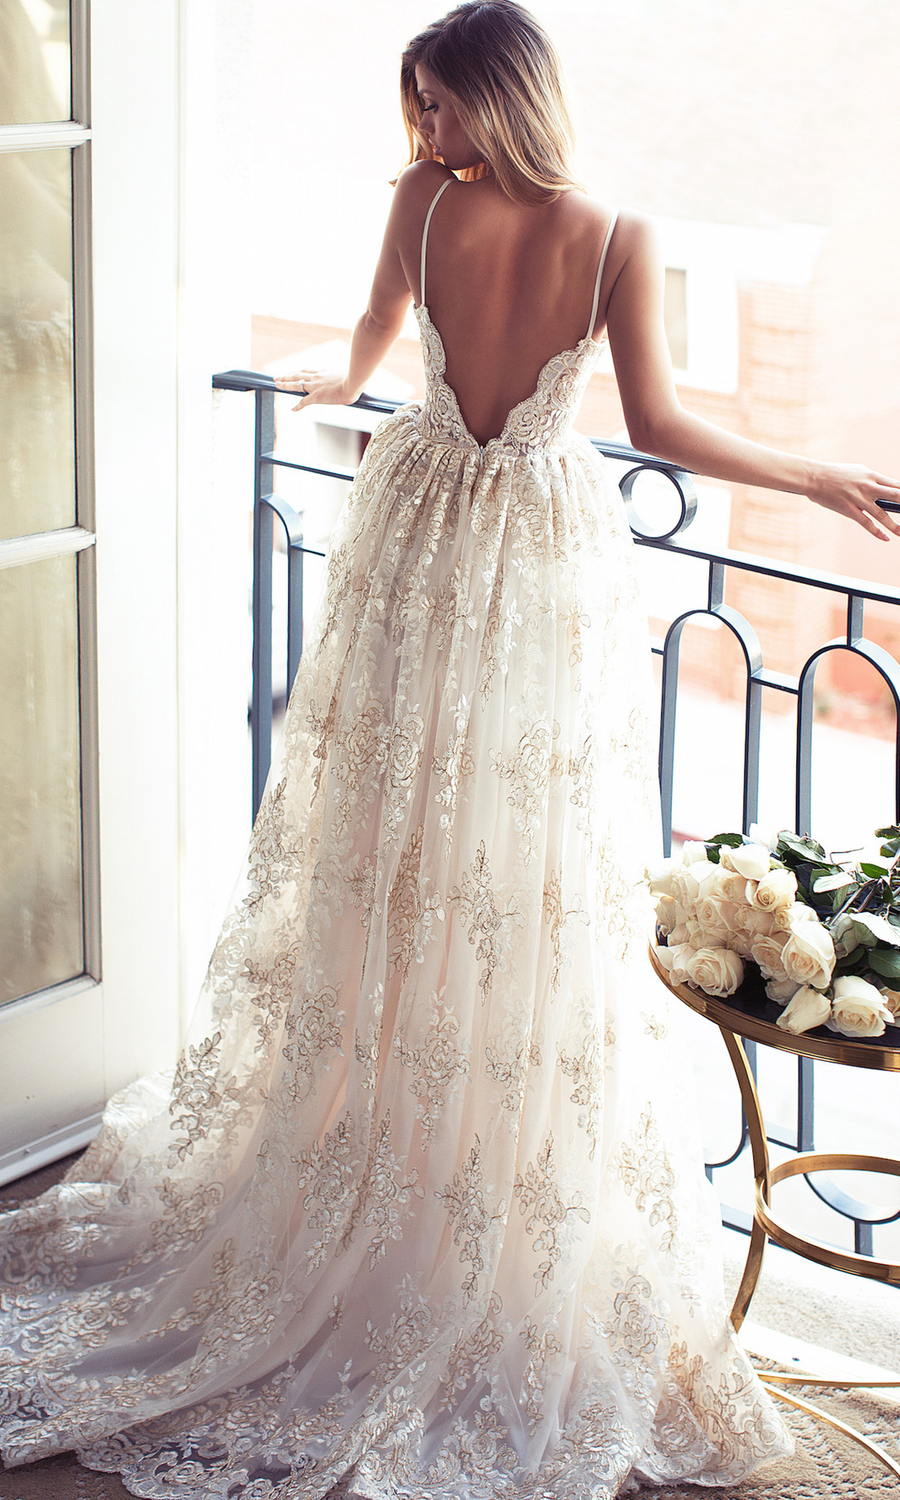 Fashion style Wedding Lace dress pinterest pictures for woman